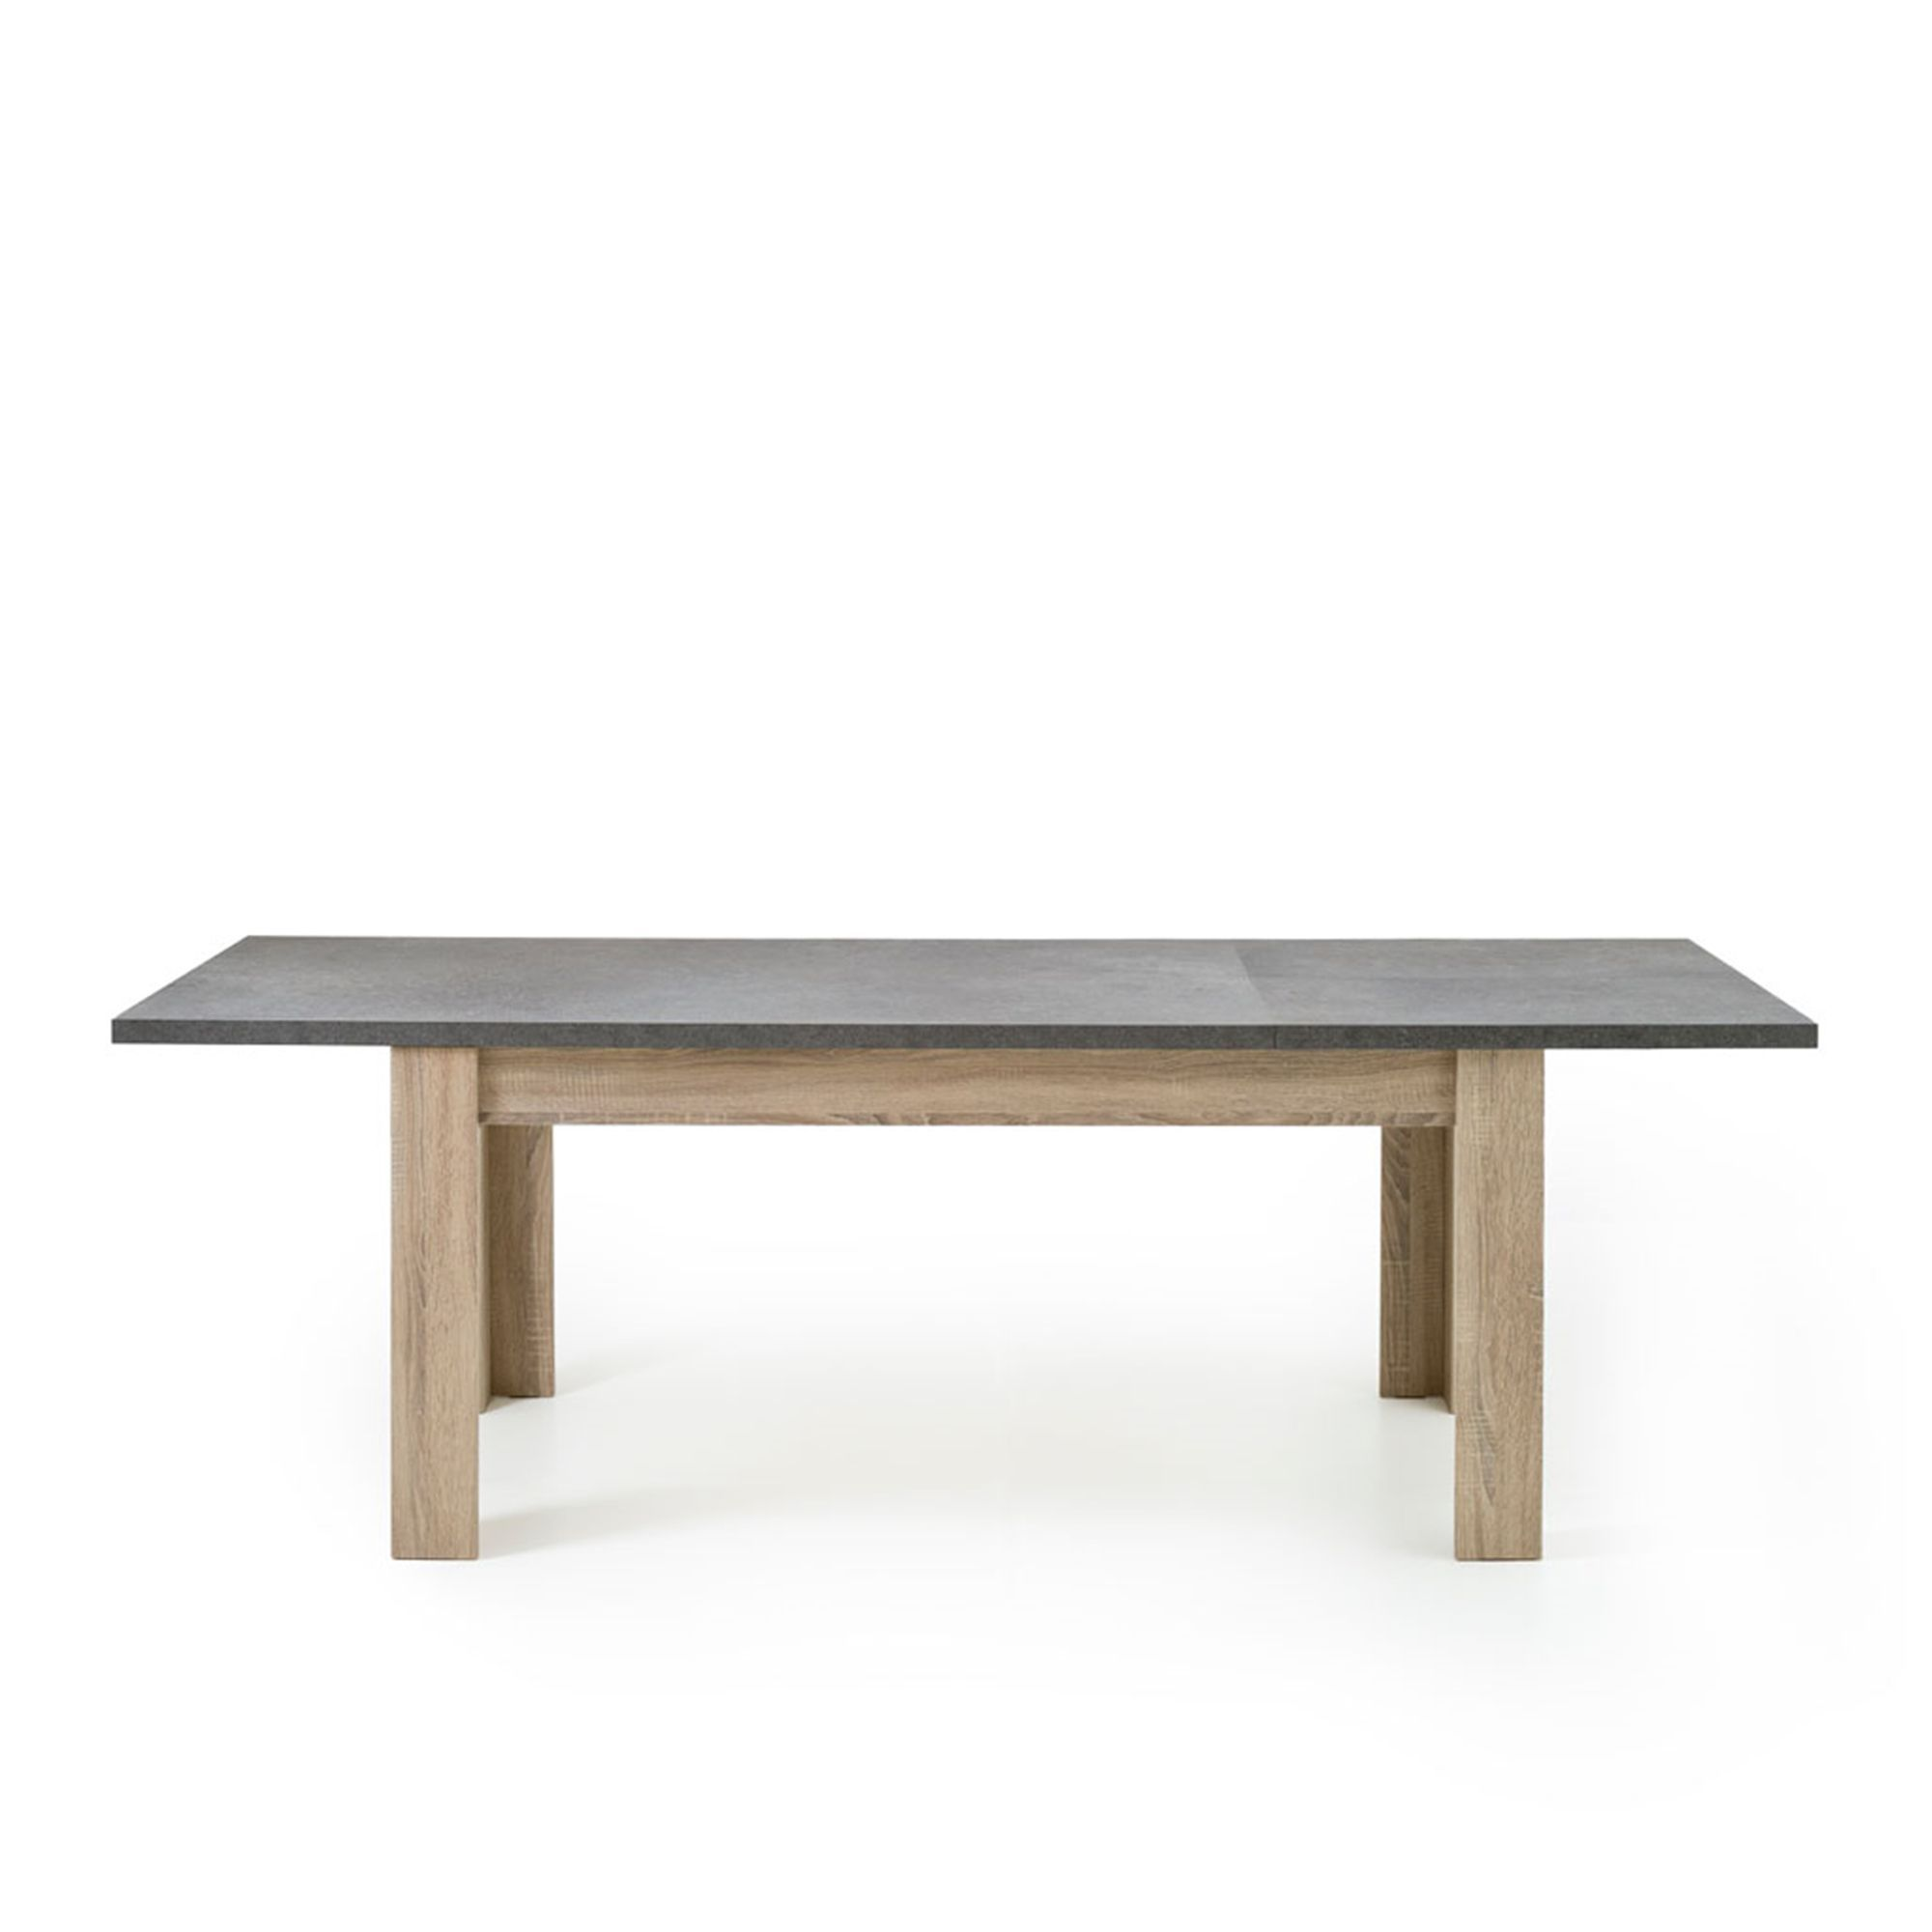 Meuble Milo Alinea Alinea Milo Table Rectangulaire Avec Allonge L160cm à L235cm 8